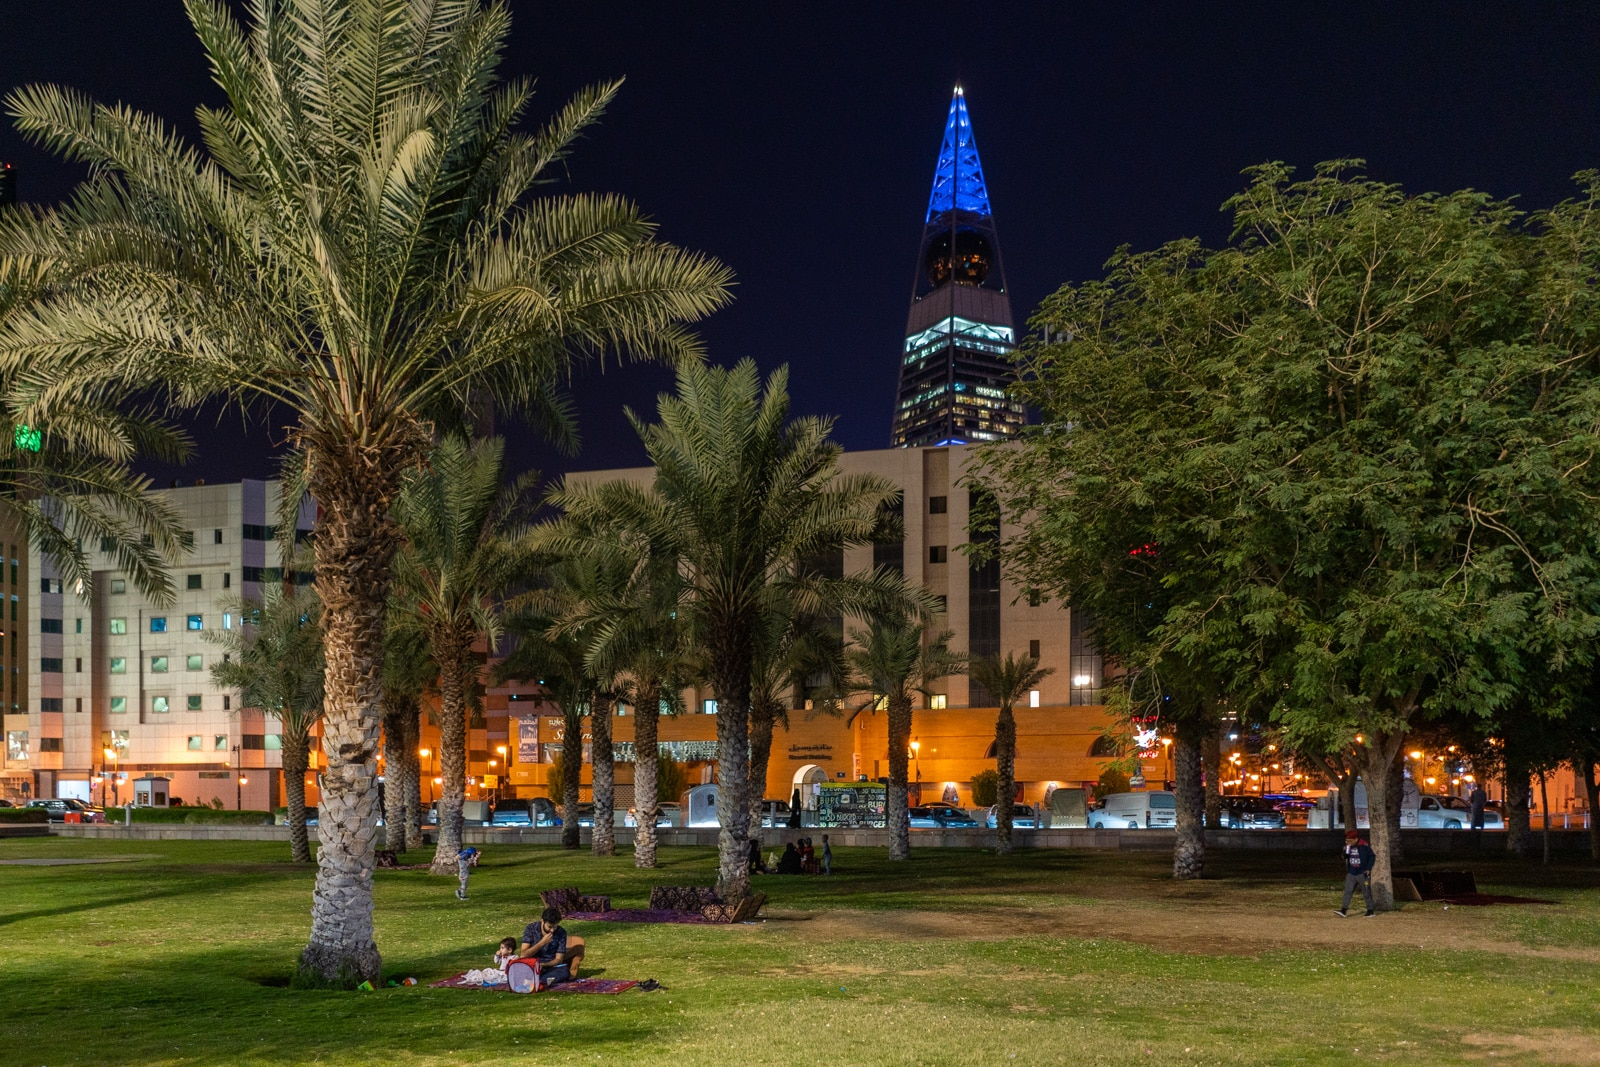 Father and son having a picnic on the lawn of the King Fahad Library in Riyadh, Saudi Arabia